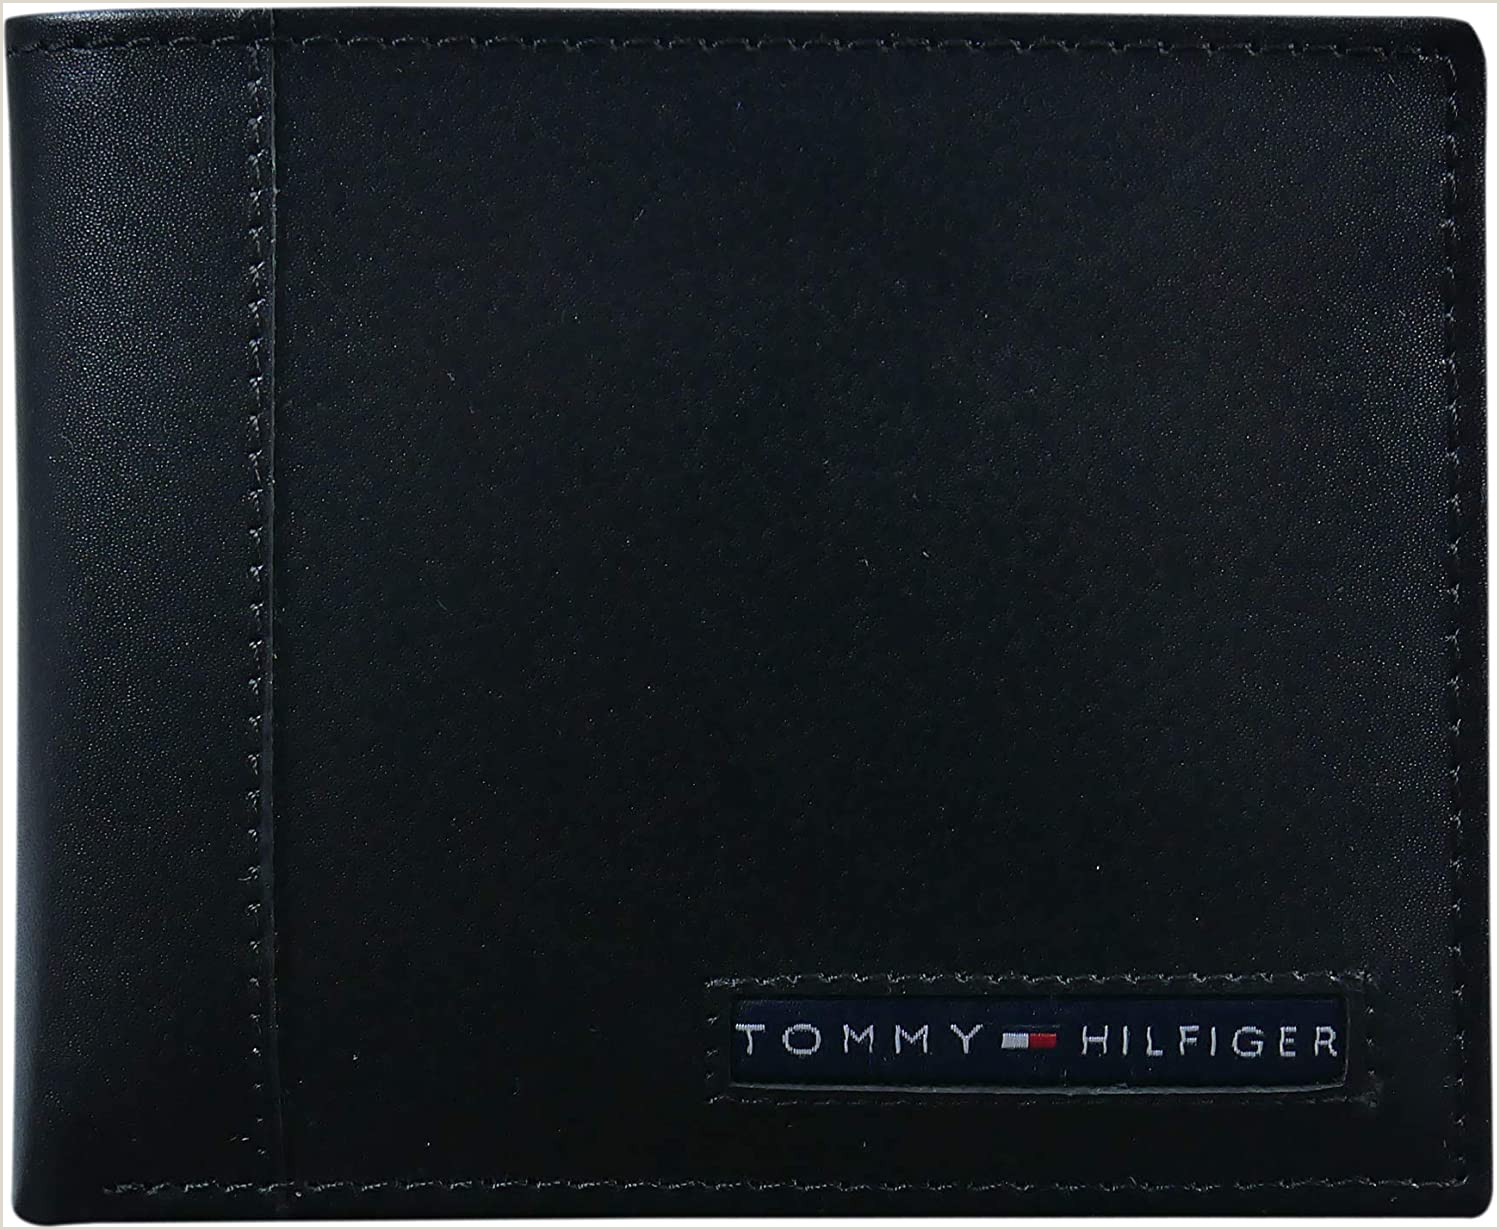 Credit Card Logos Black And White Tommy Hilfiger Men S Leather Wallet – Slim Bifold With 6 Credit Card Pockets And Removable Id Window Black Cambridge E Size